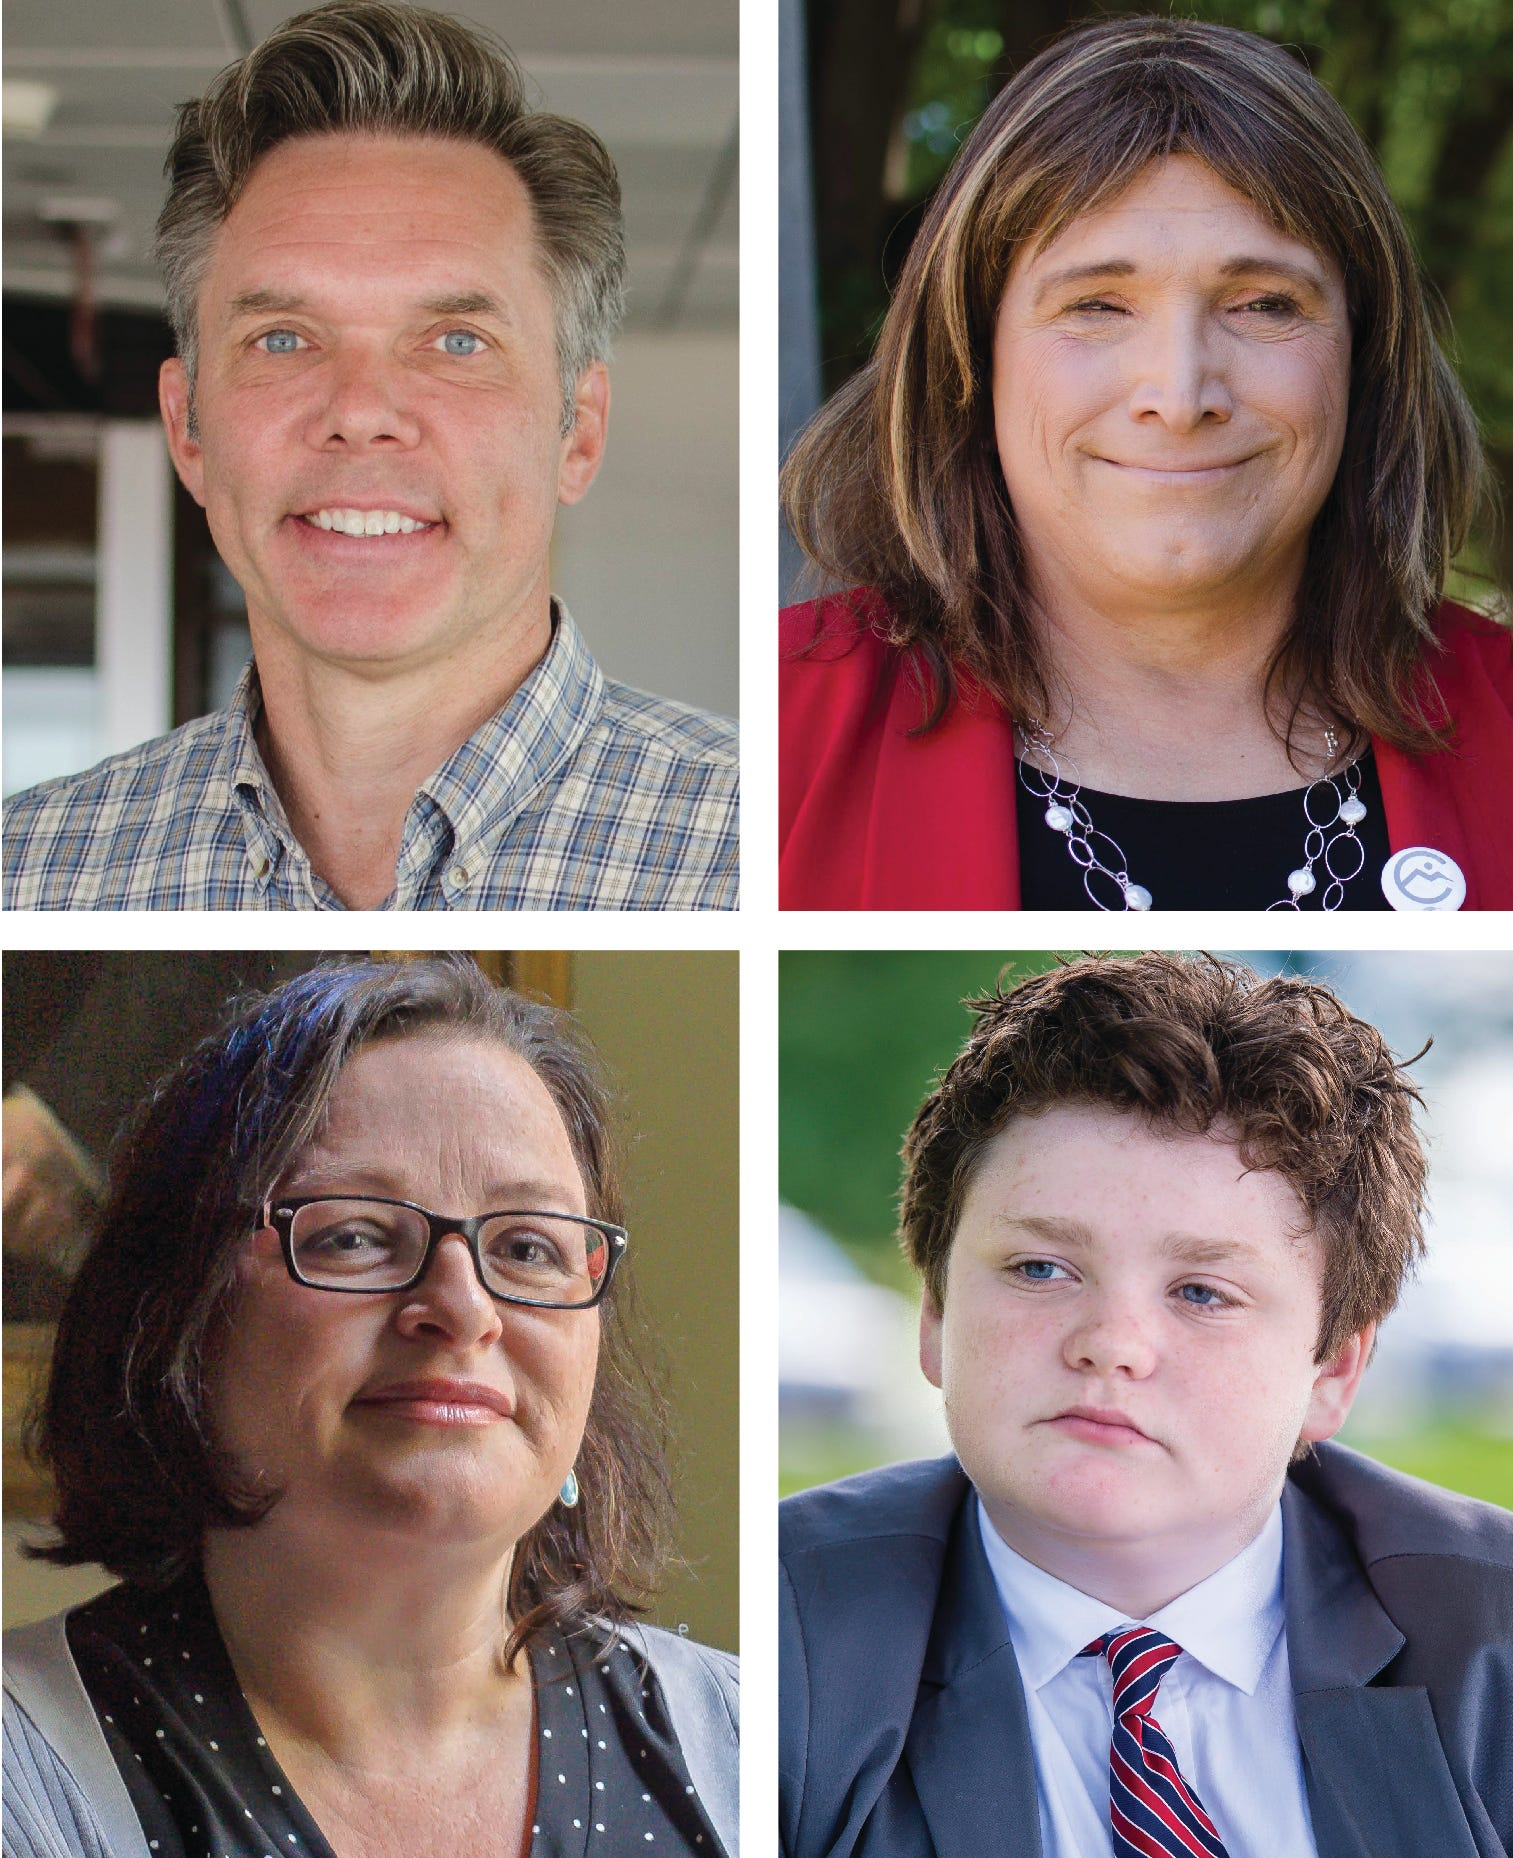 Vermont primary elections: Highlights from the Democratic and Republican races | Burlington Free Press